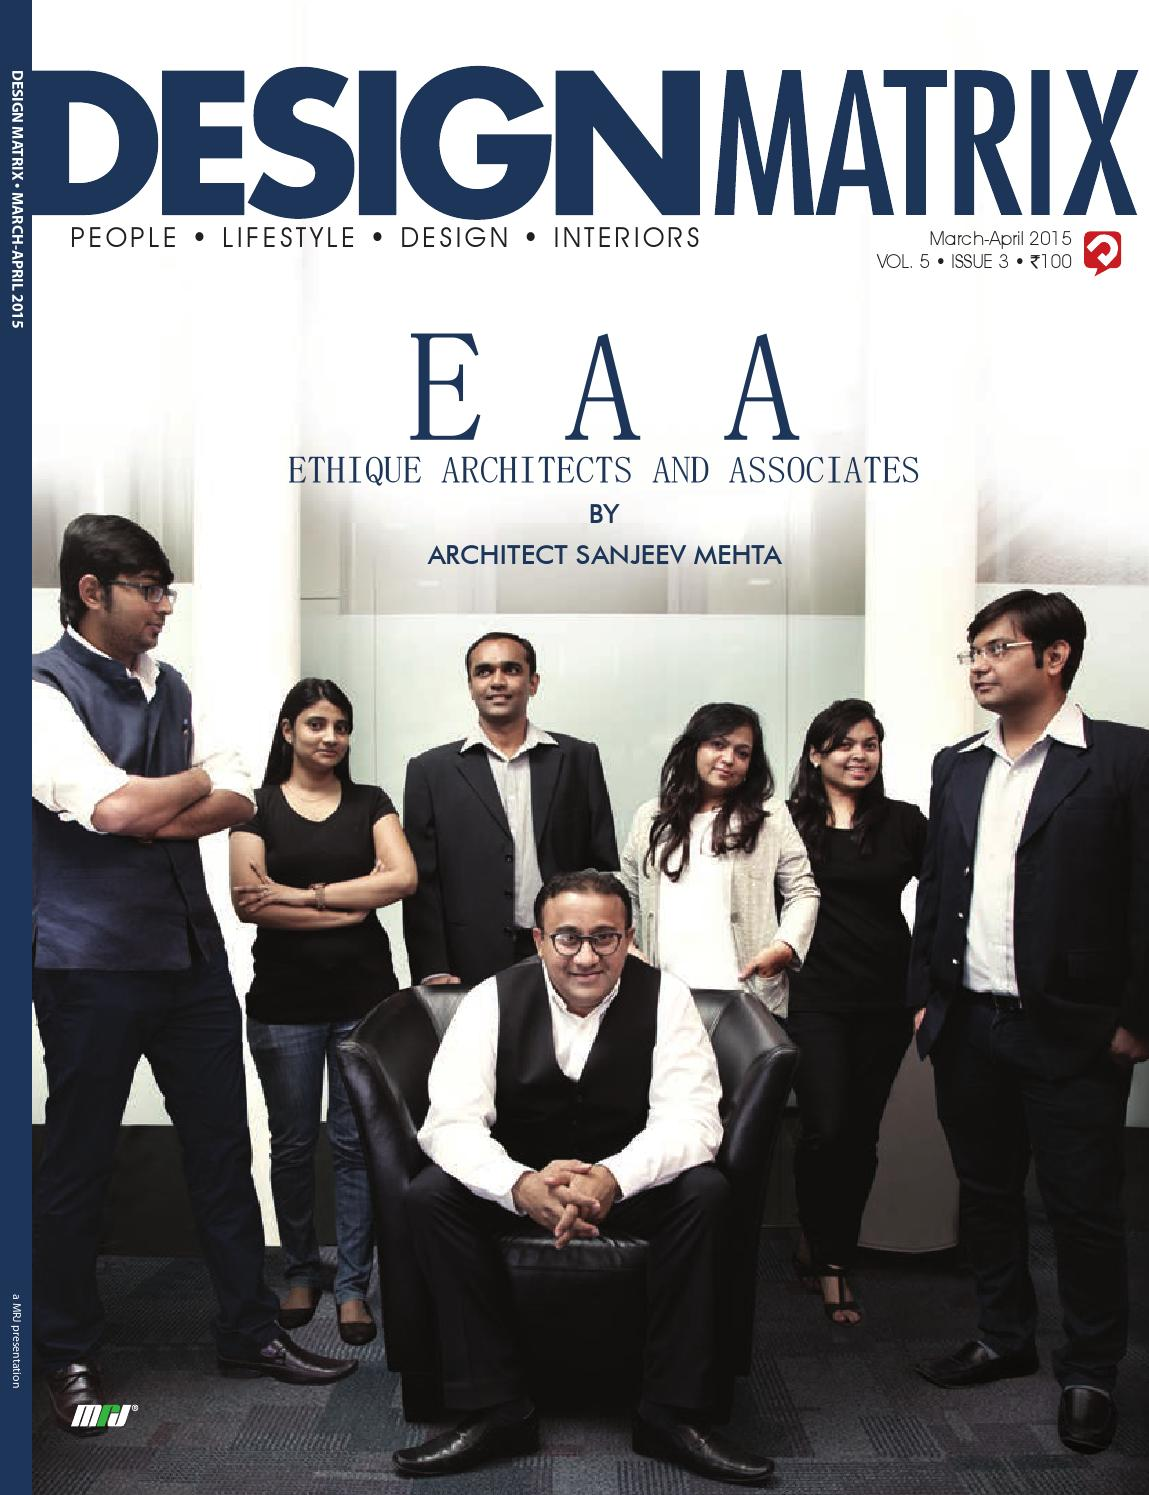 March april 2015 issue of design matrix by design matrix issuu